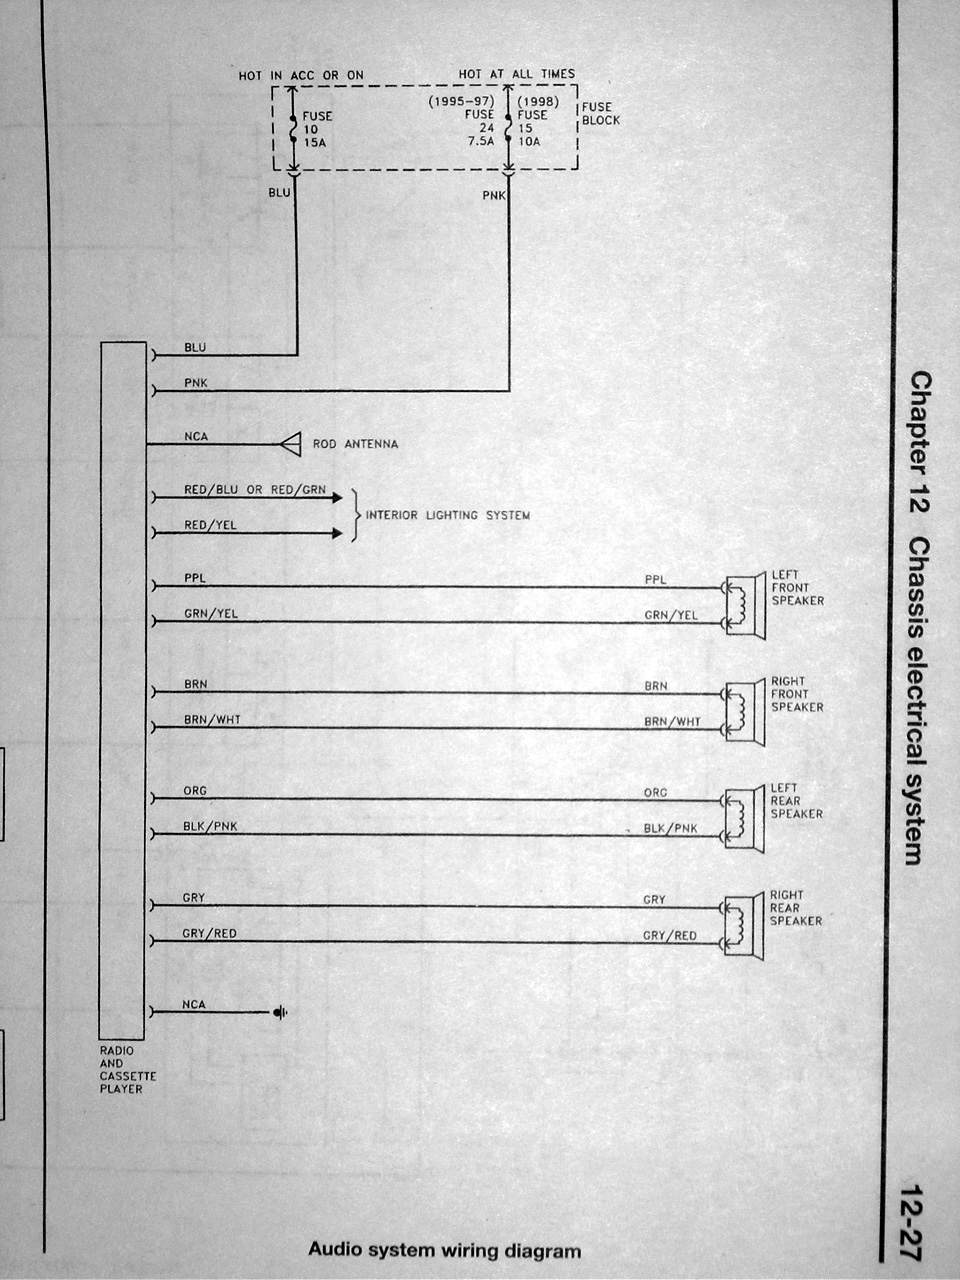 hight resolution of wiring diagram thread useful info nissan forum 2008 pathfinder headlight wiring harness nissan forum nissan